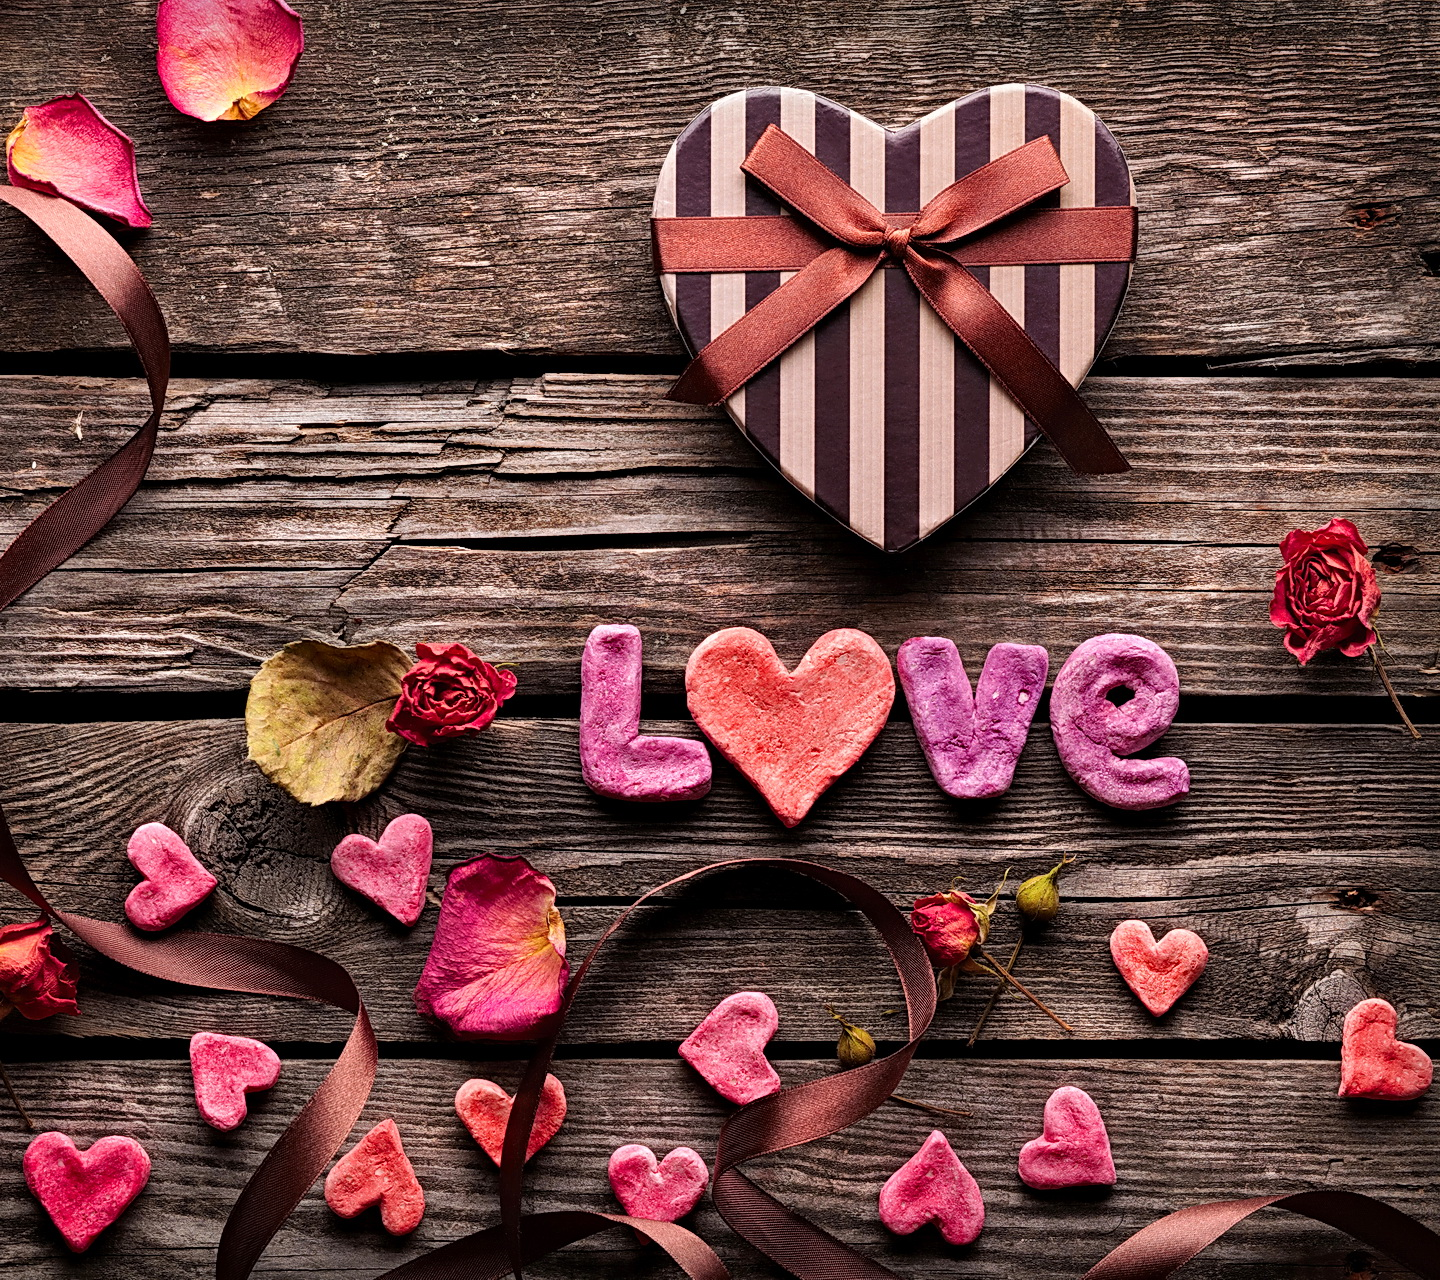 Free Love Wallpaper Download For Mobile Phones